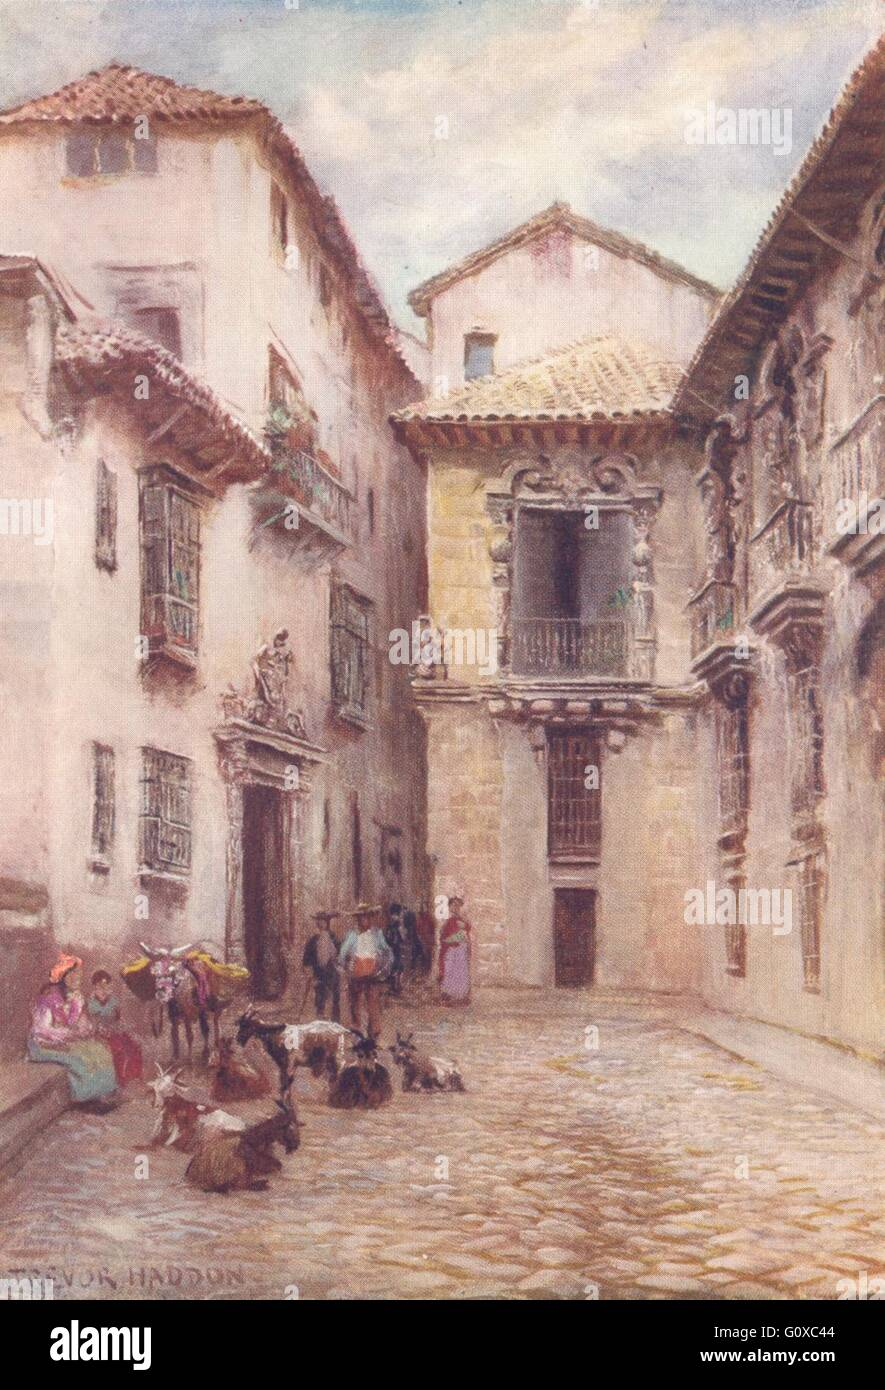 SPAIN Granada-A Street in the Albaicin 1908 old antique vintage print picture